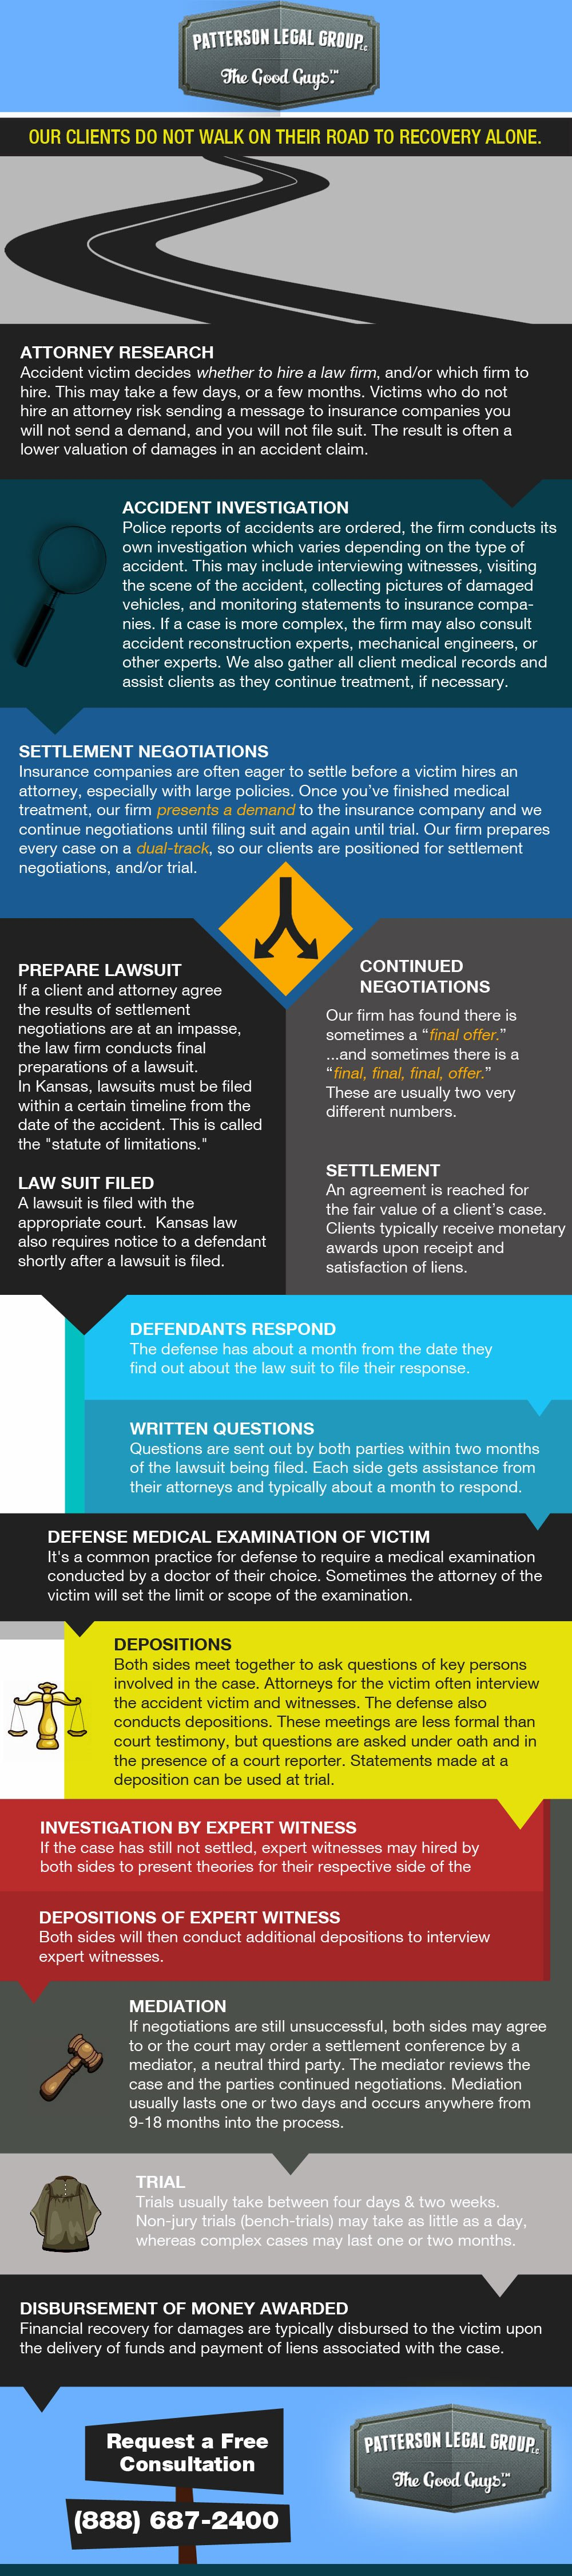 This graphic illustrates the timeline of a personal injury accident case or claim in Kansas